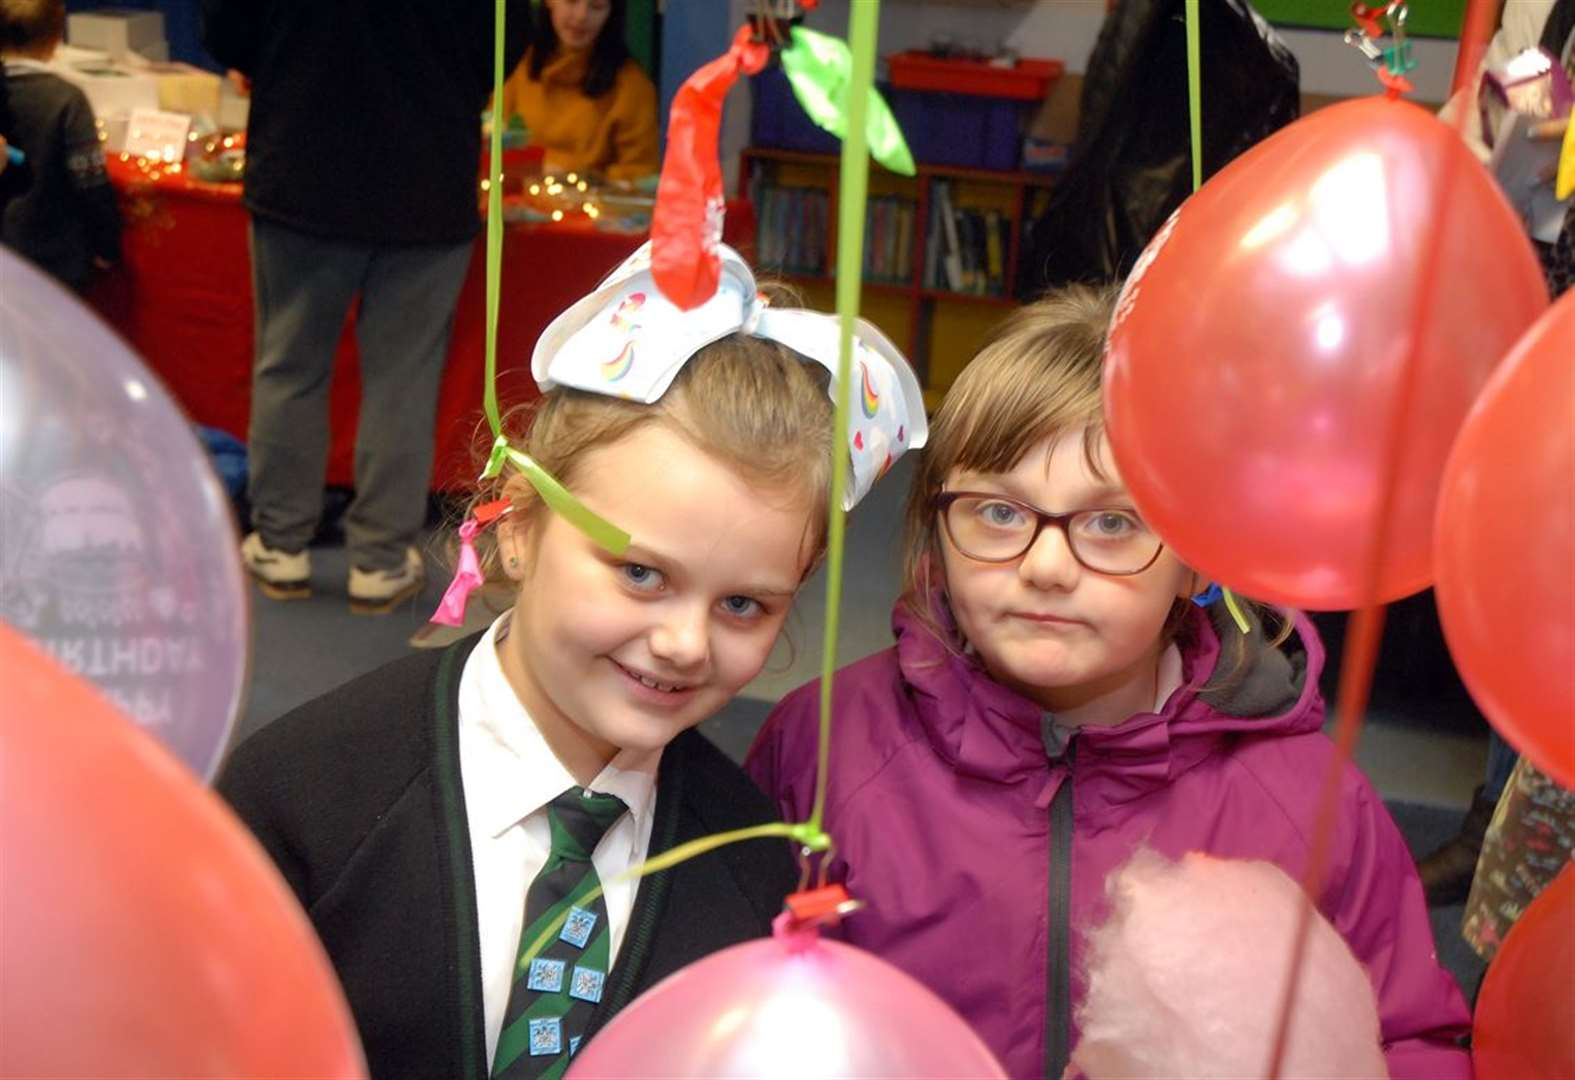 PHOTO GALLERY: Parents organise festive fair at town school